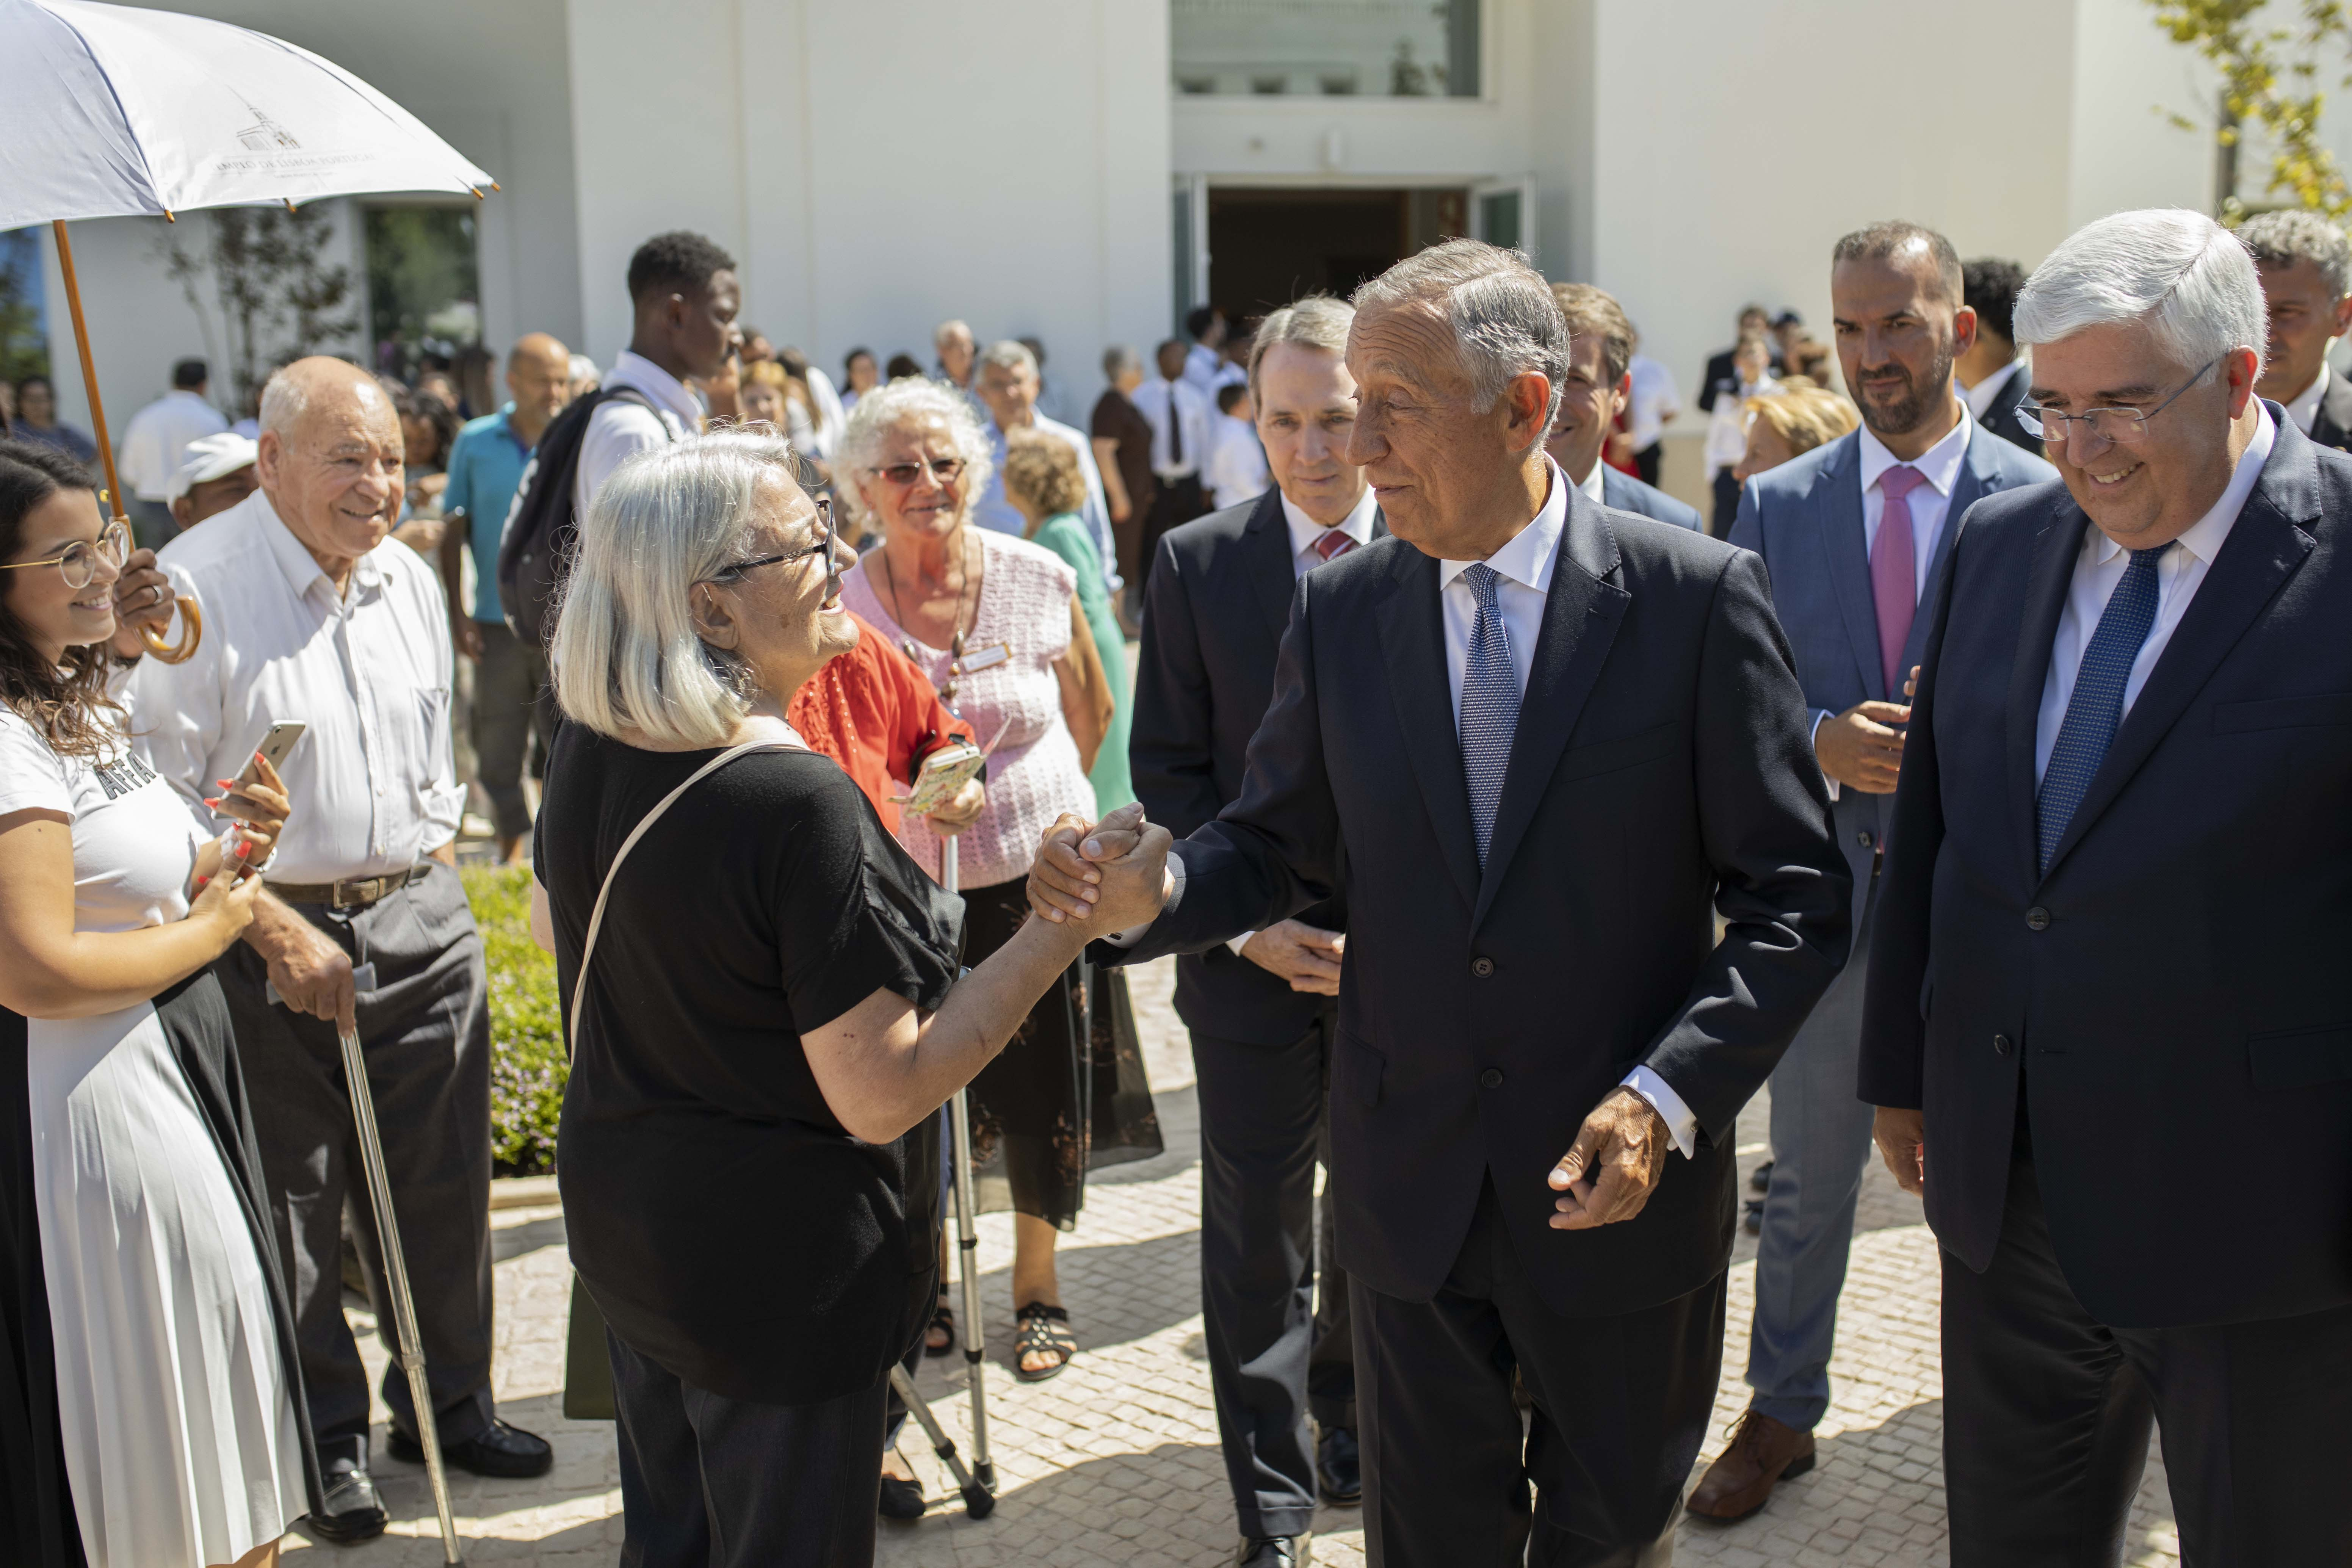 The president of Portugal, Marcelo Rebelo de Sousa, along with several Church leaders, greet members and visitors on the Lisbon Portugal Temple grounds on Aug. 29, 2019.